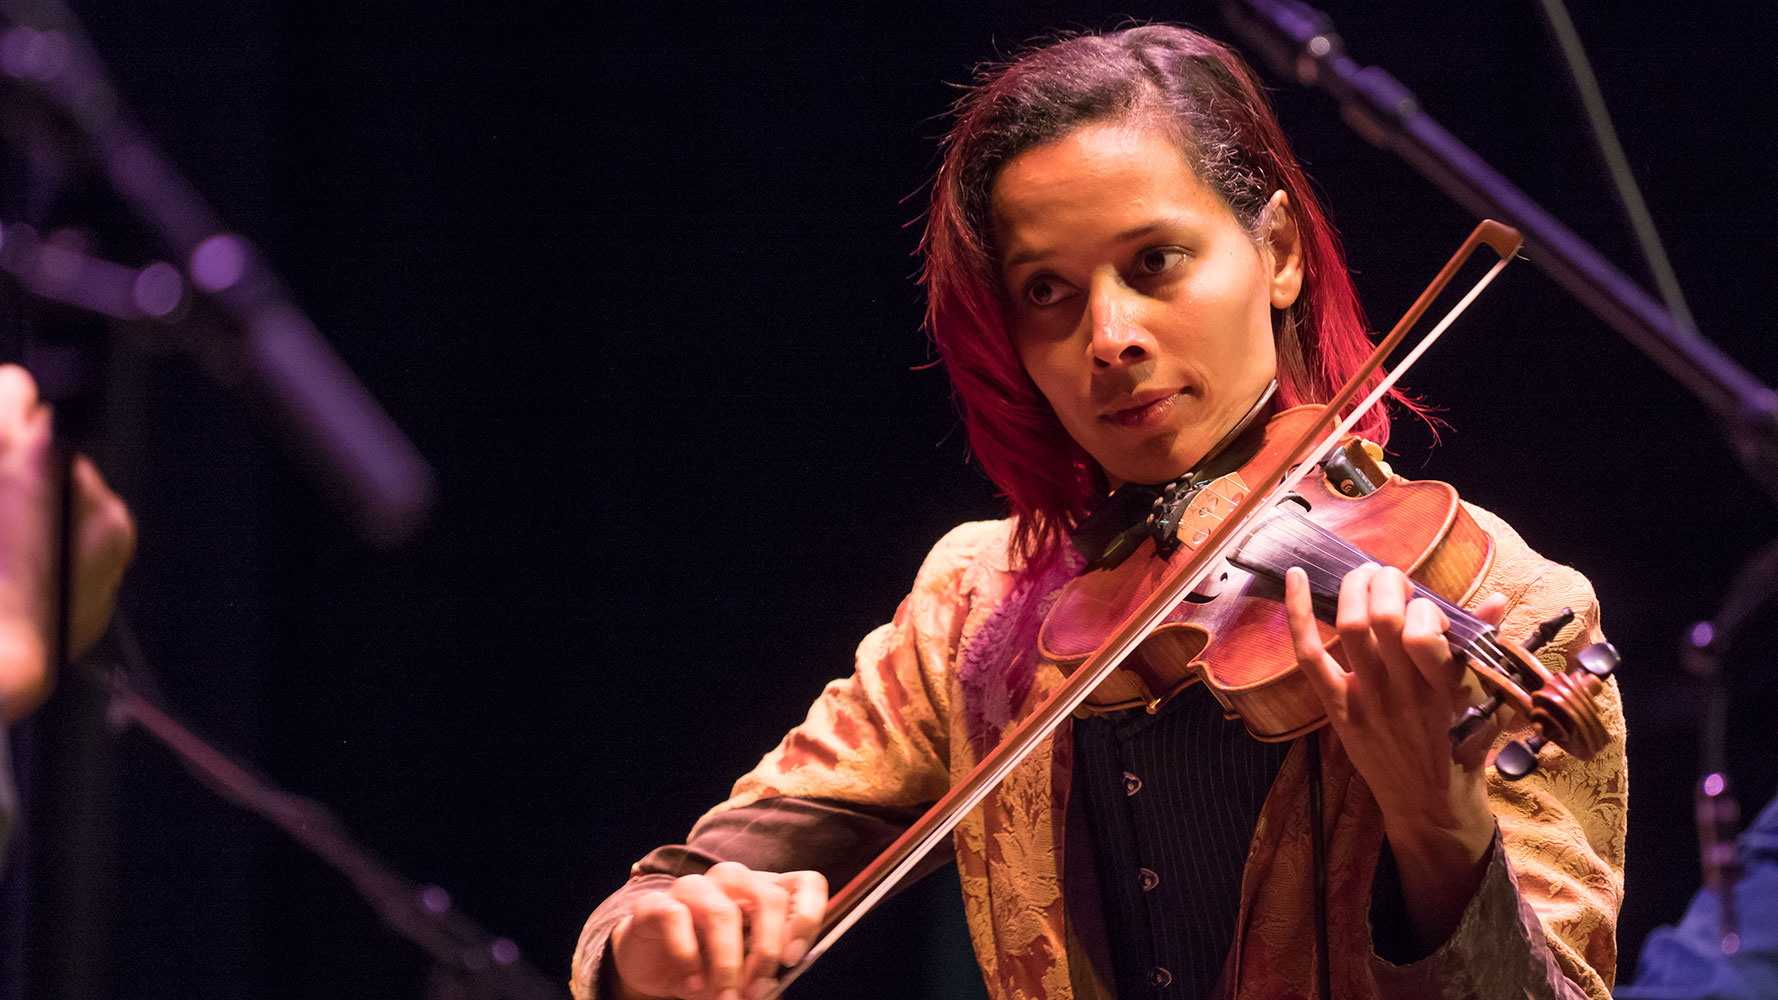 Rhiannon Giddens plays at UNCG Founder's Concert